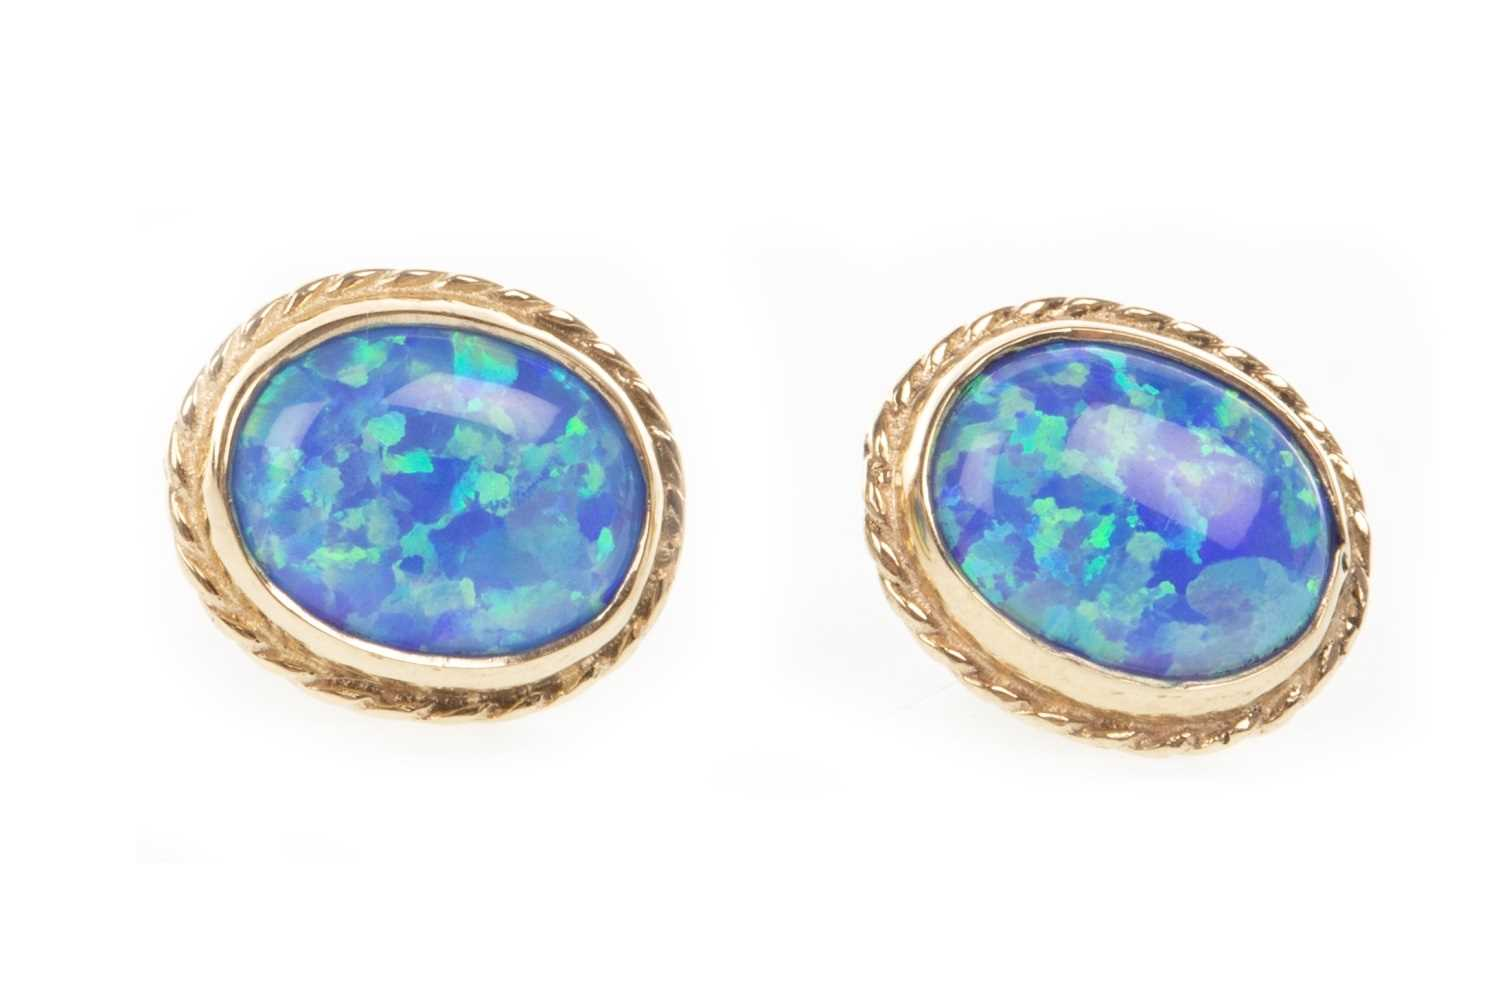 Lot 140-A PAIR OF GEM SET STUD EARRINGS